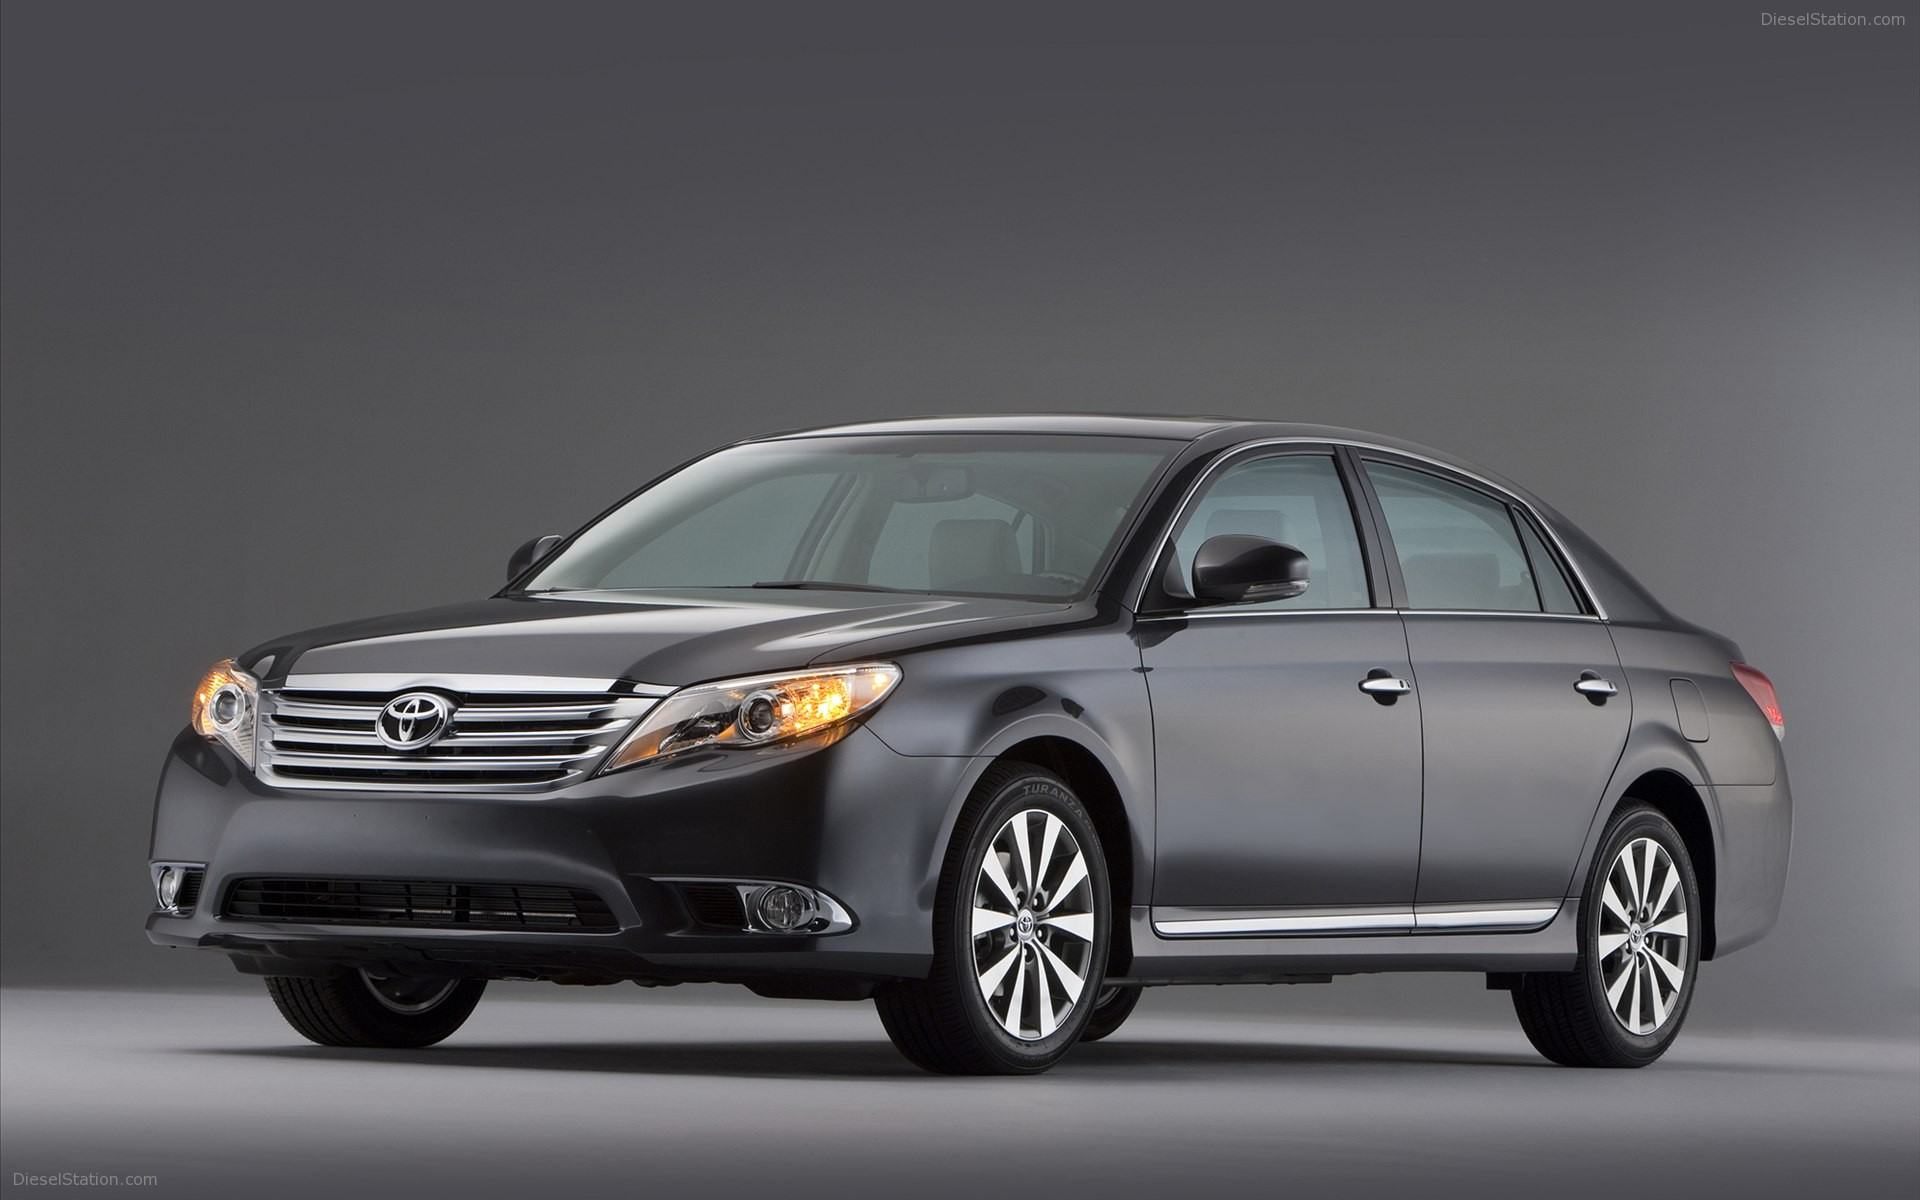 Toyota-Avalon-2012-widescreen-21